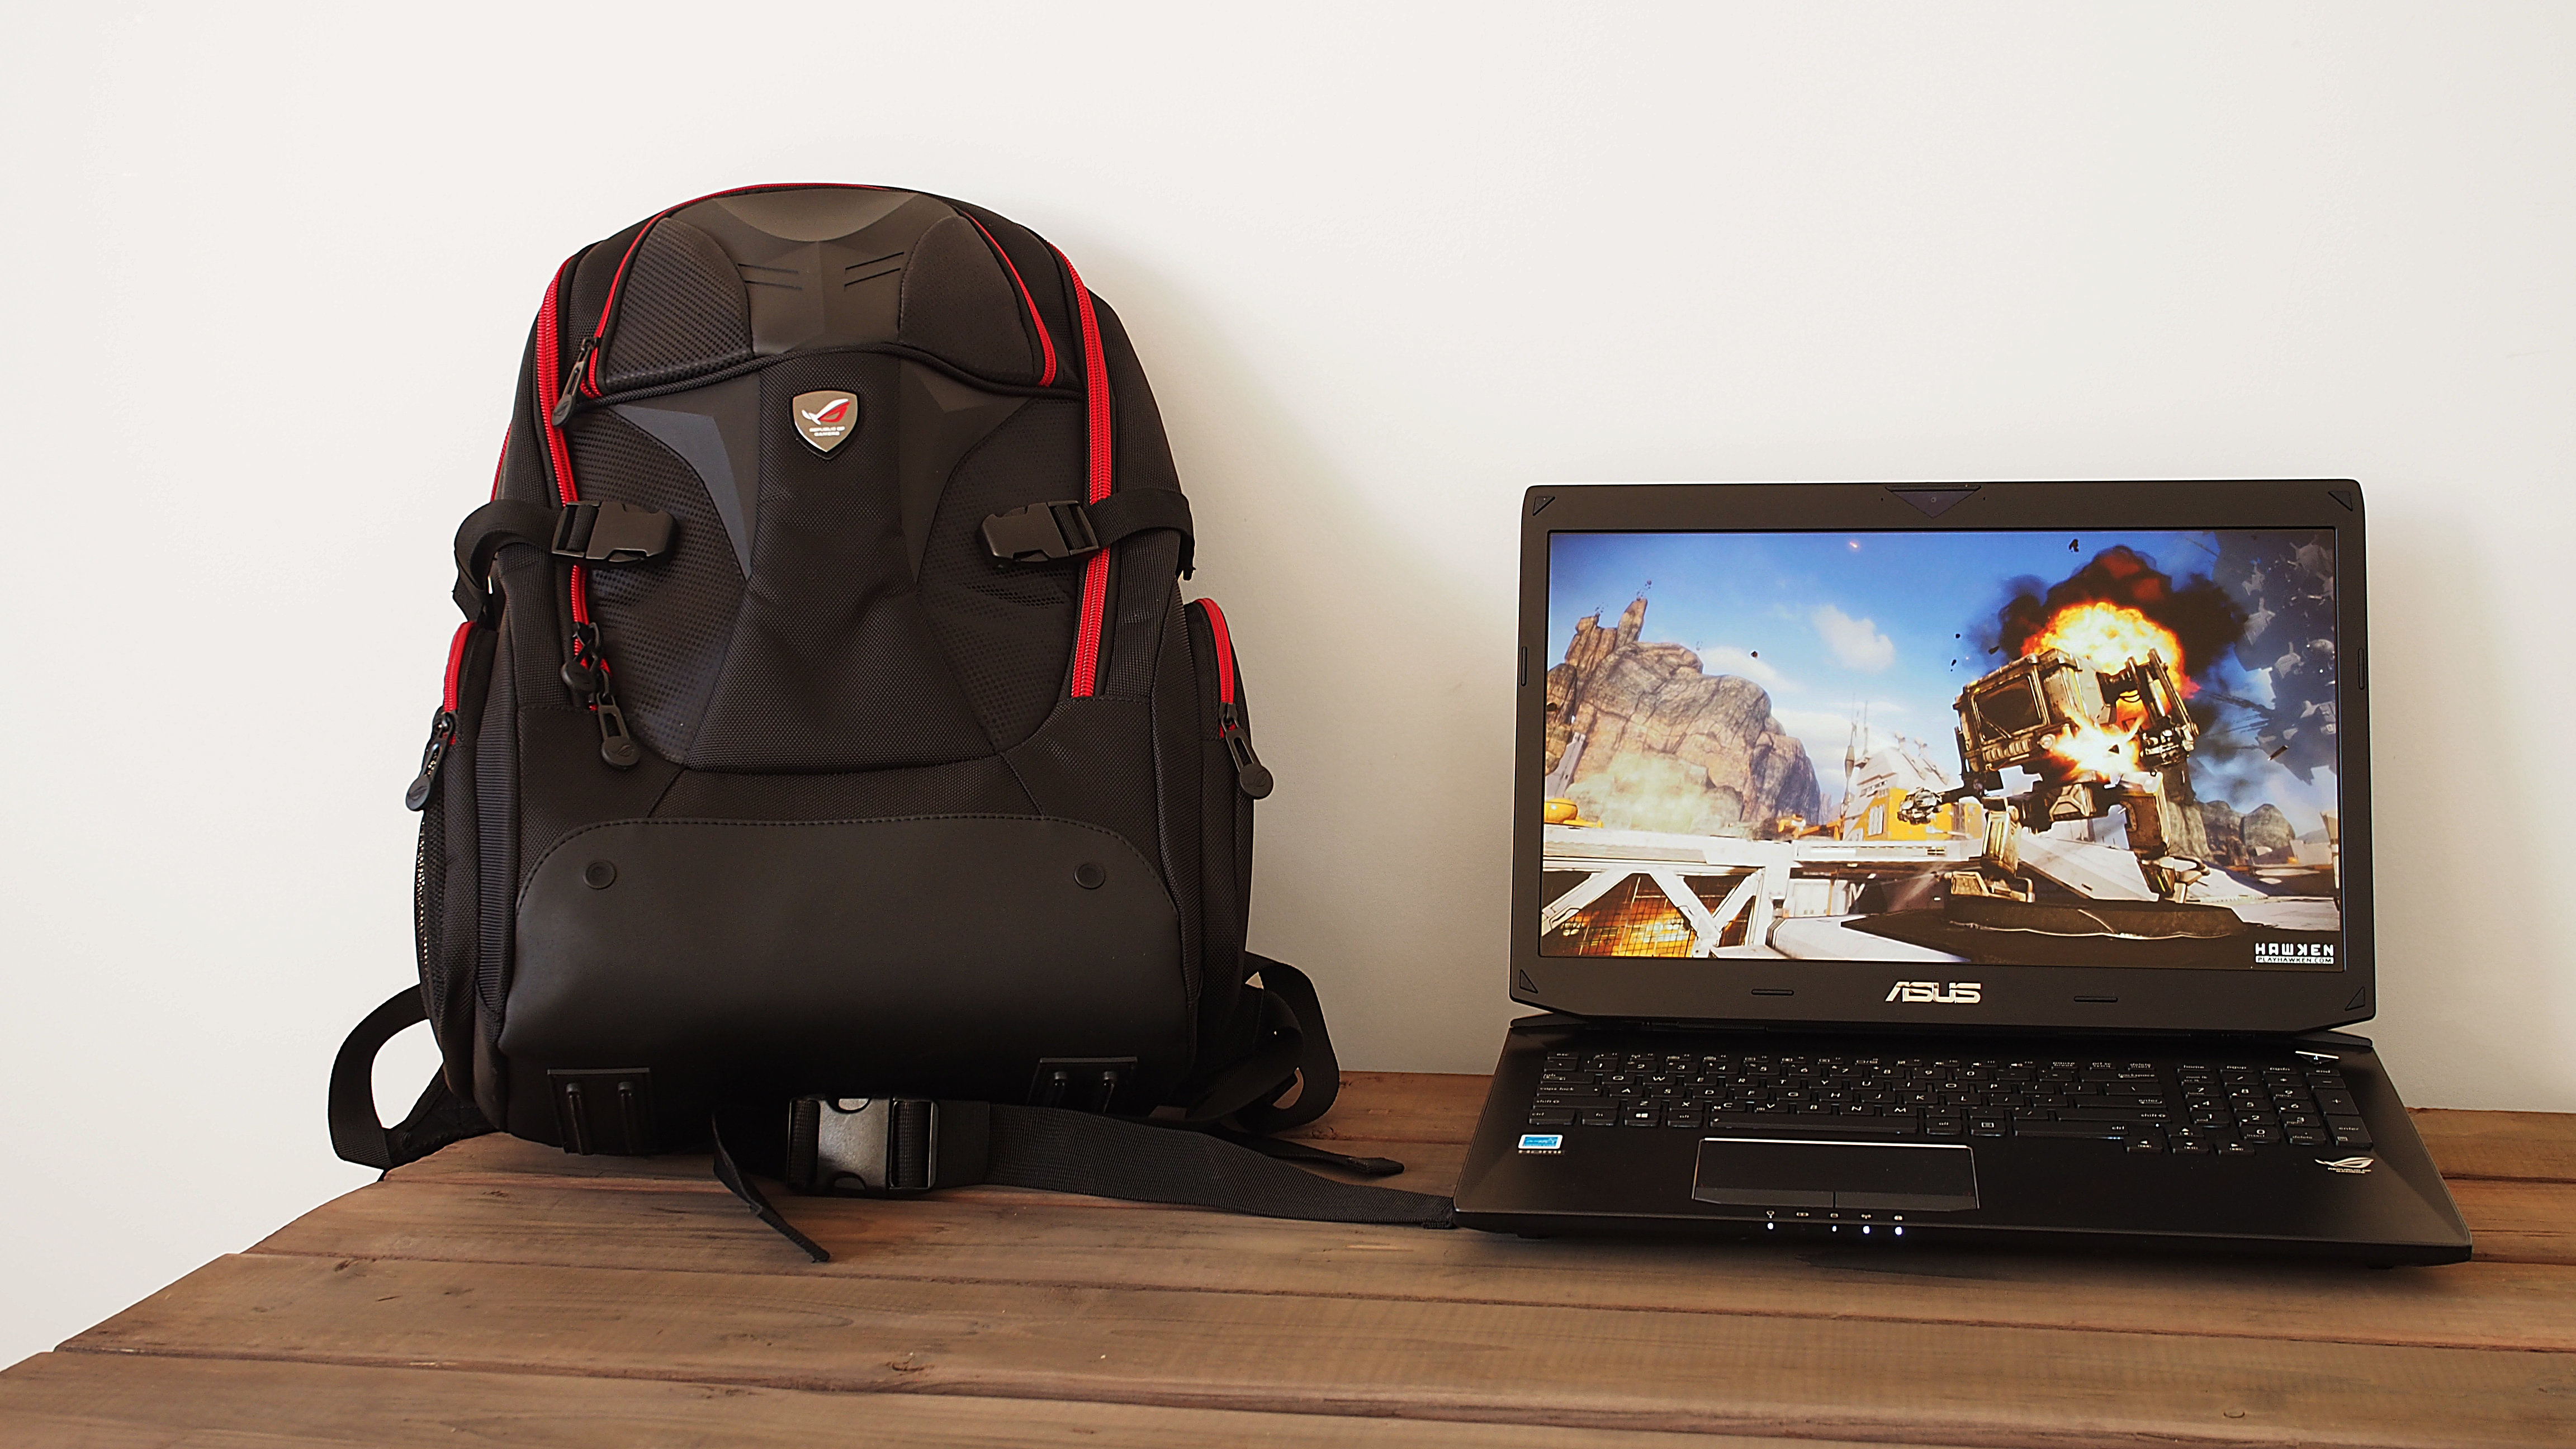 Asus sells a matching backpack for the G750JZ separately.